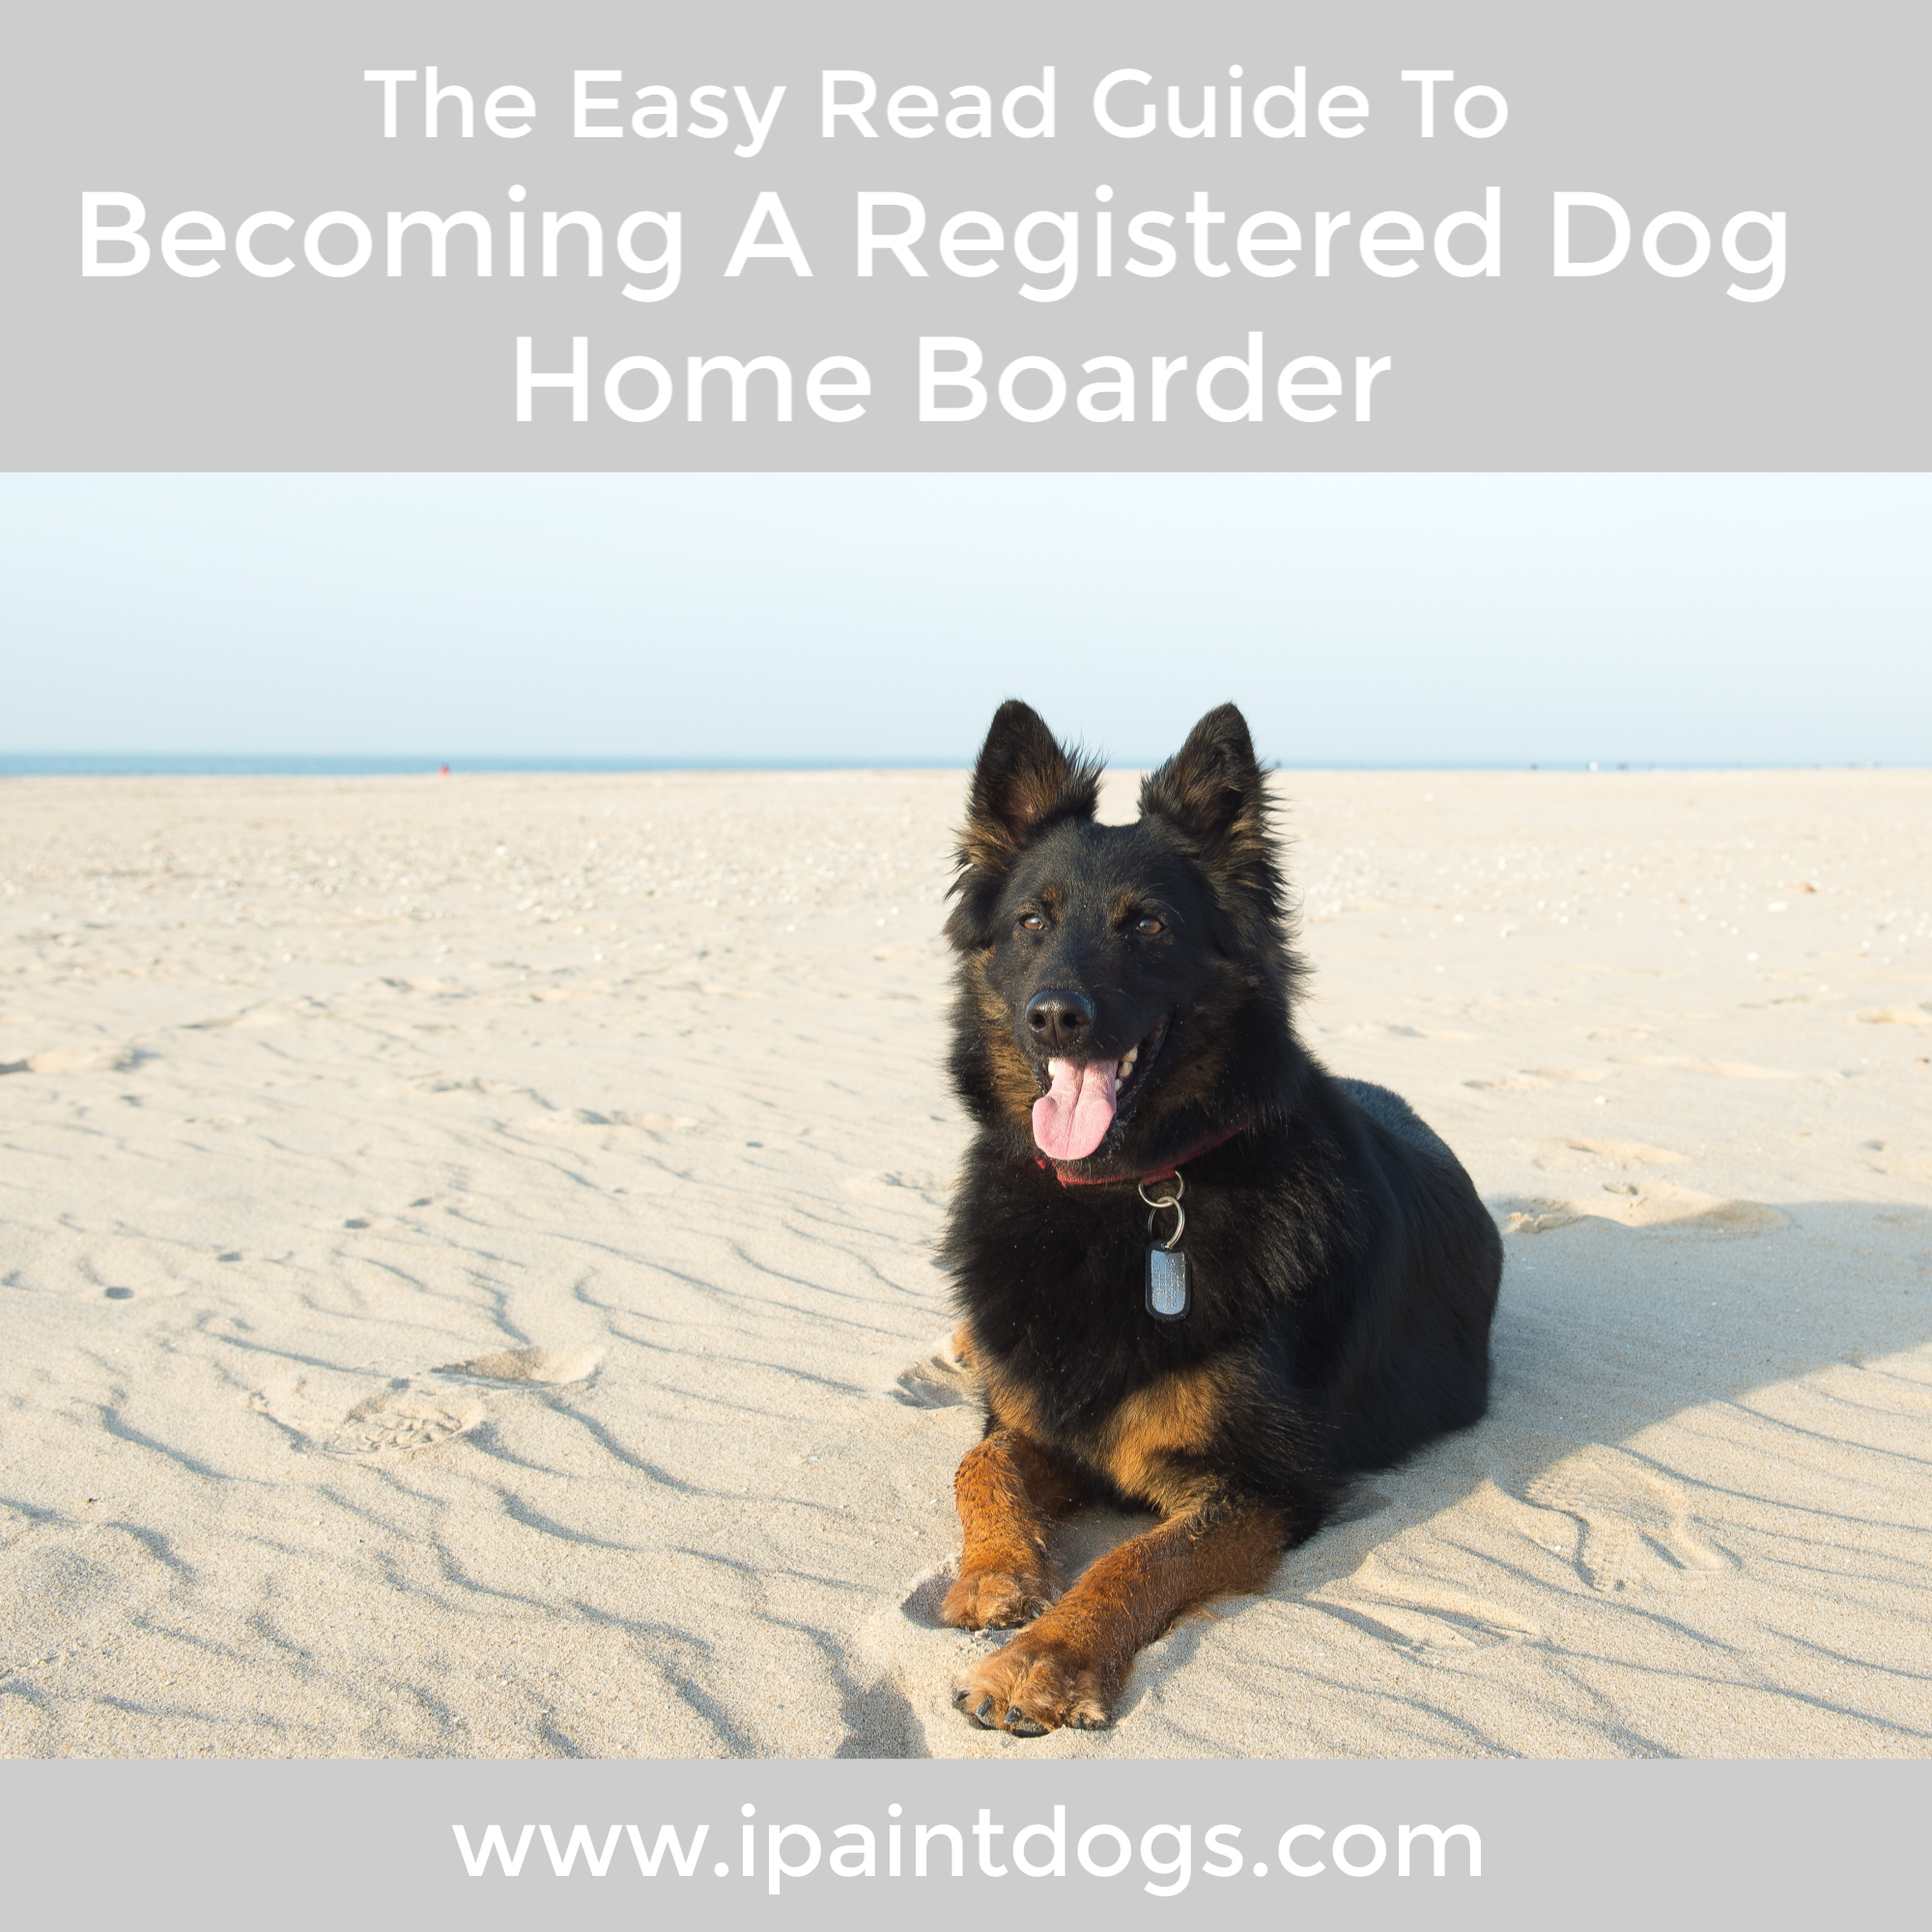 The Easy Read Guide To Becoming A Registered Dog Home Boarder by Samantha Barnes, ipaintdogs.com